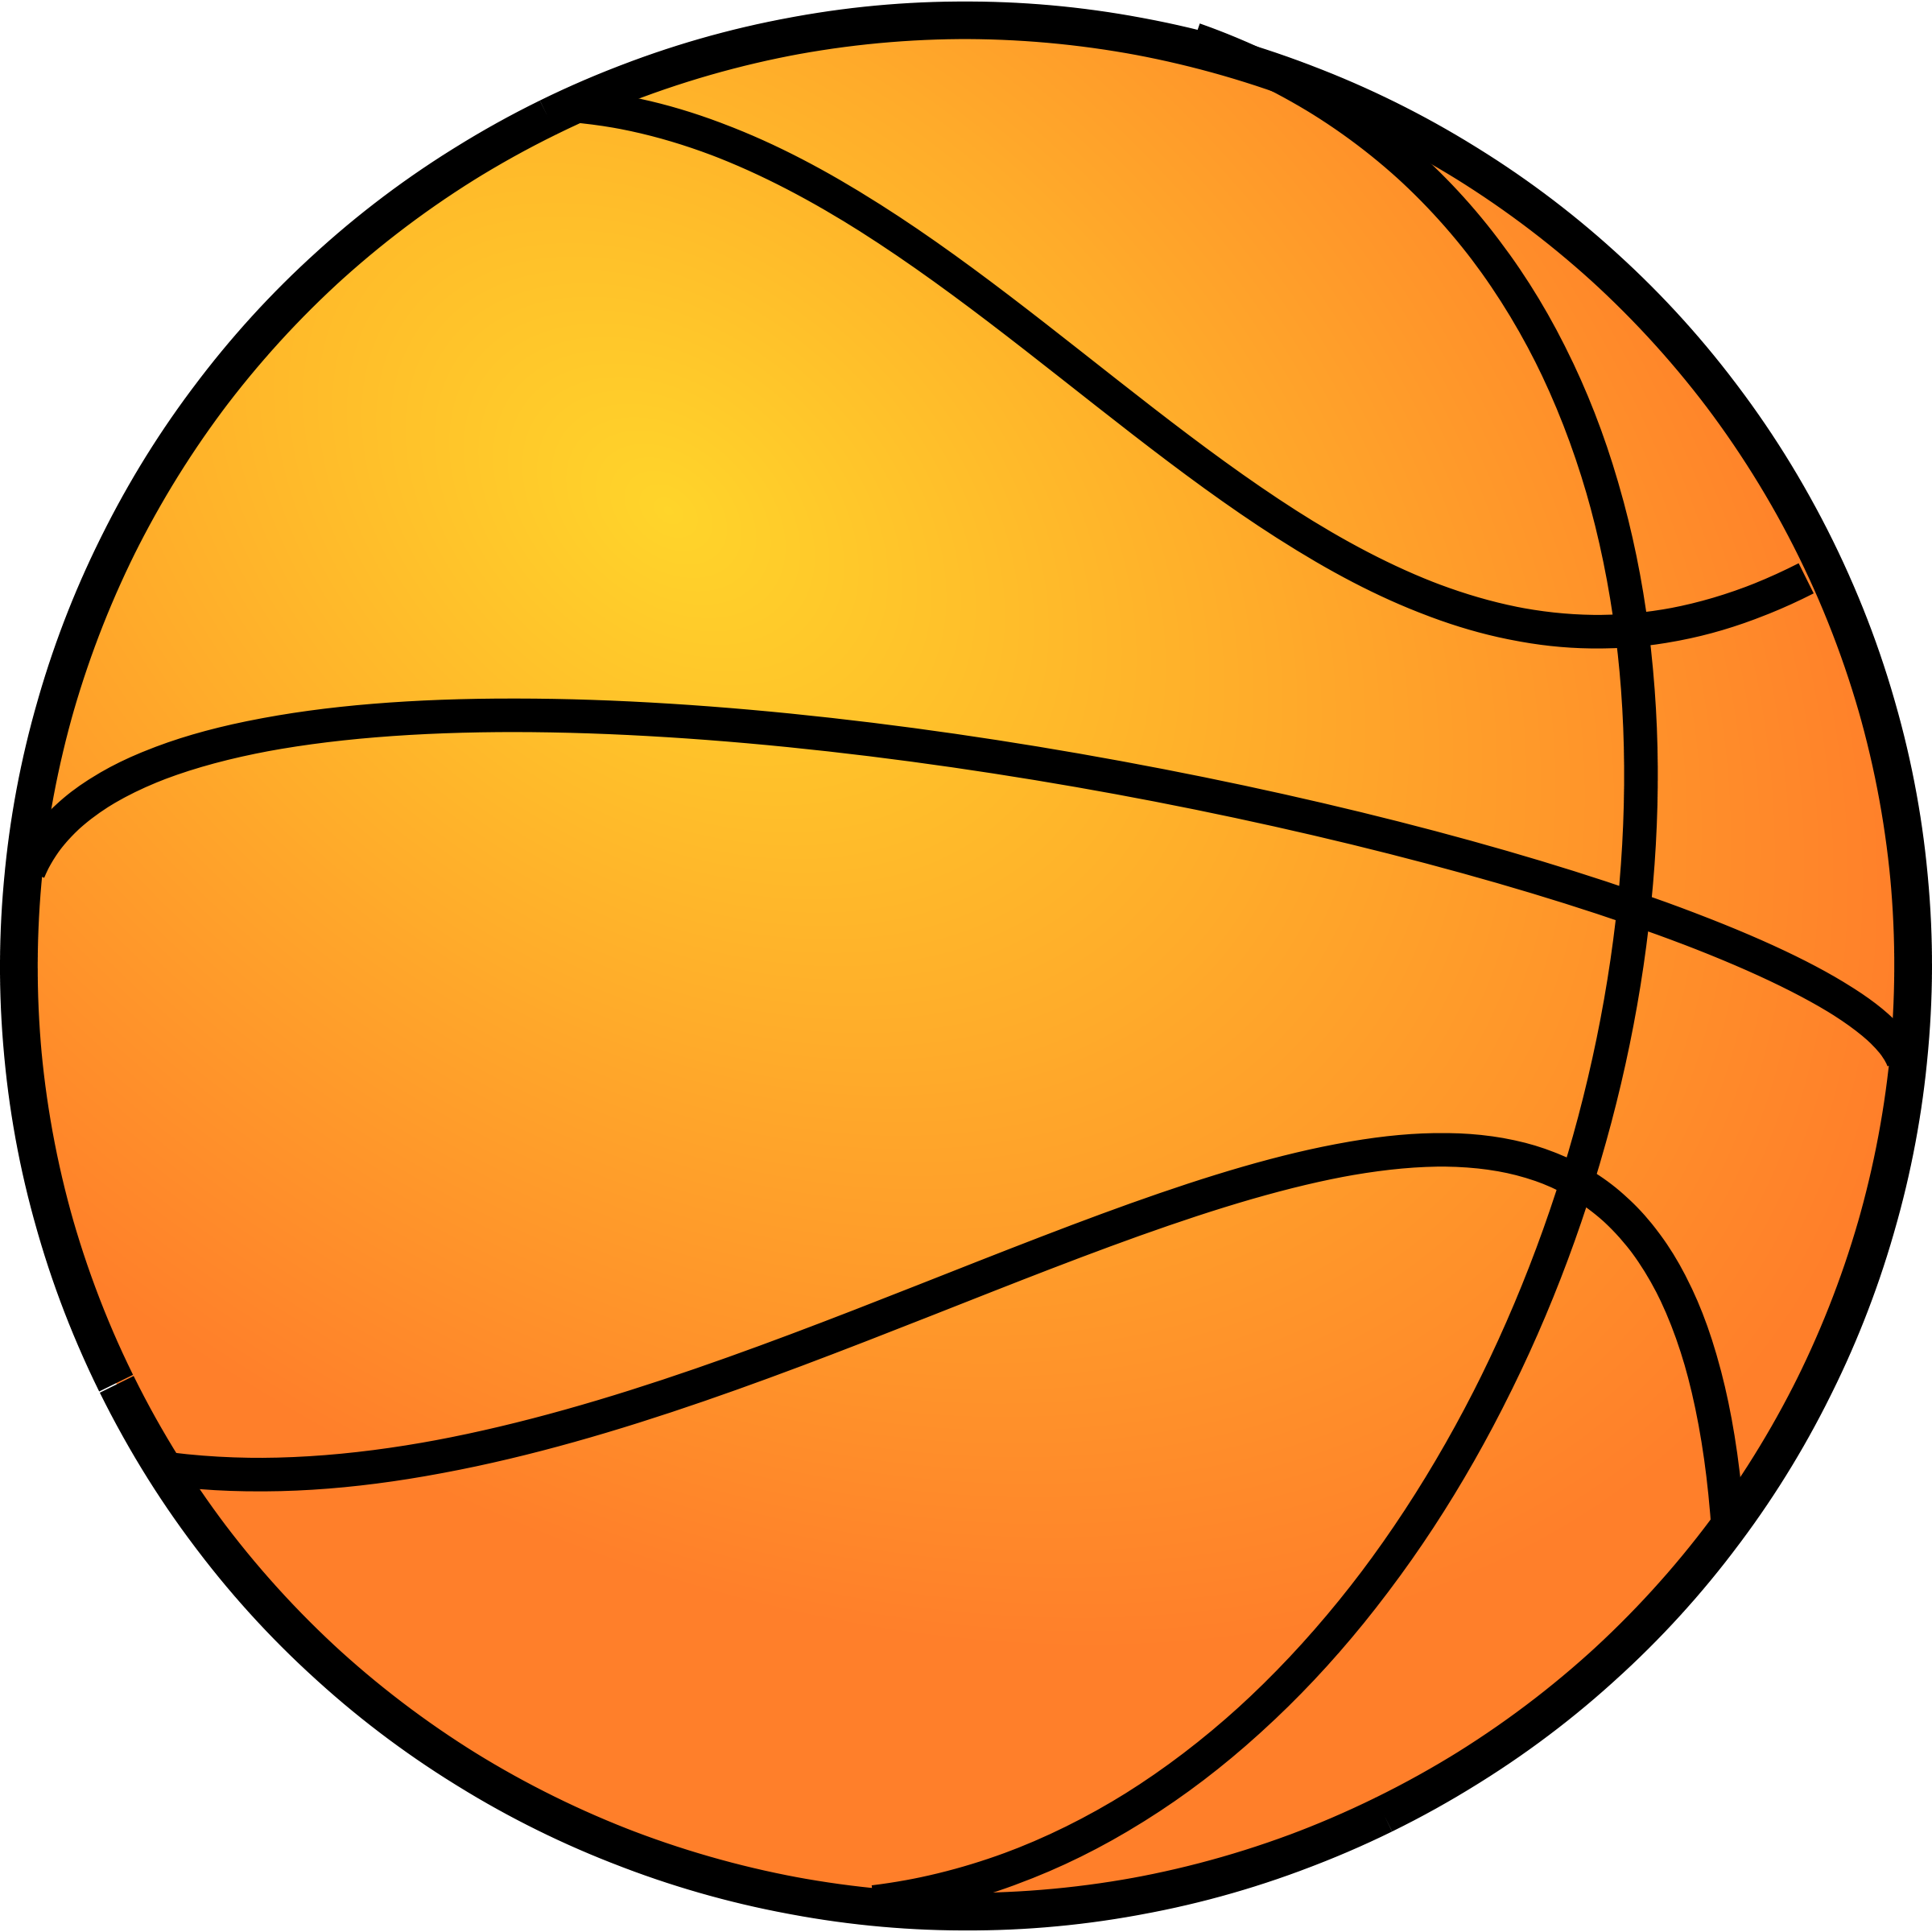 2400x2400 Basketball Clipart Free Images